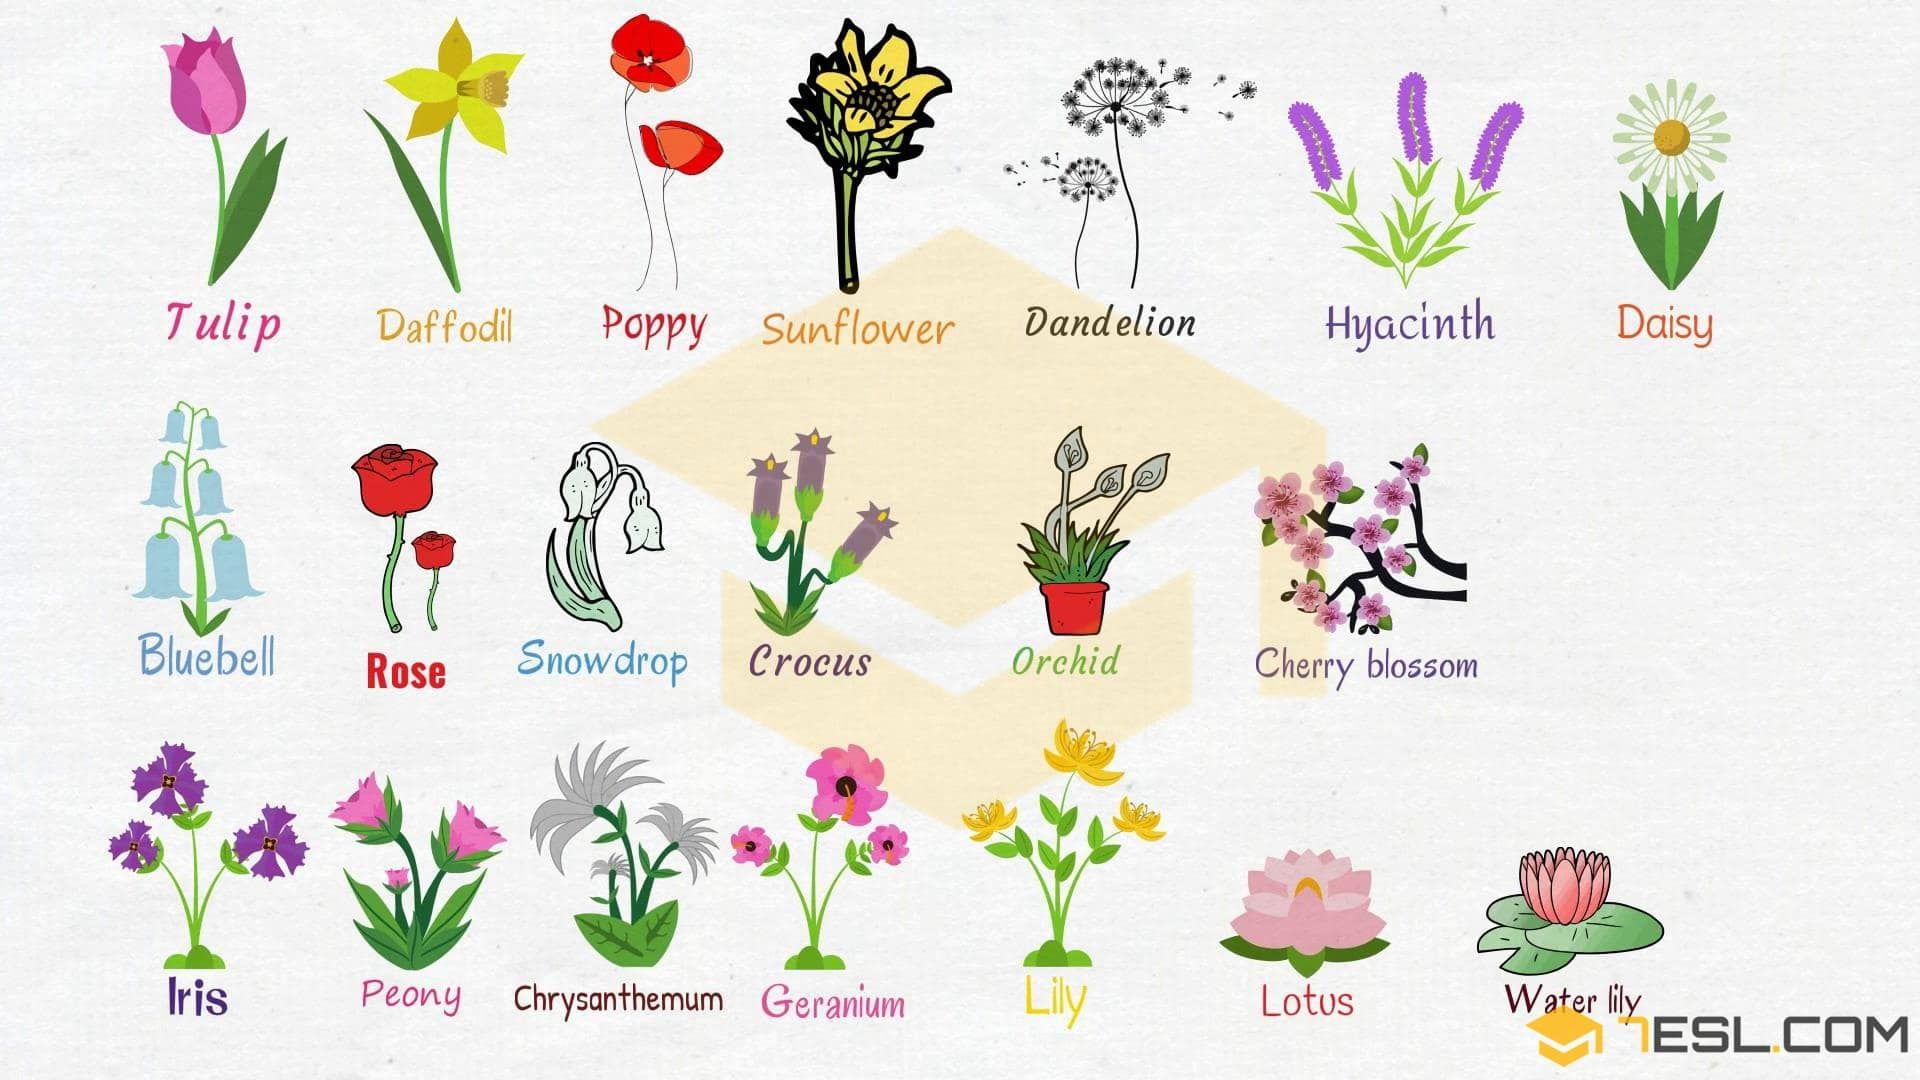 Flowers Names Useful List Of Flowers With Images 7 E S L List Of Flowers Flower Names Flowers Names And Pictures